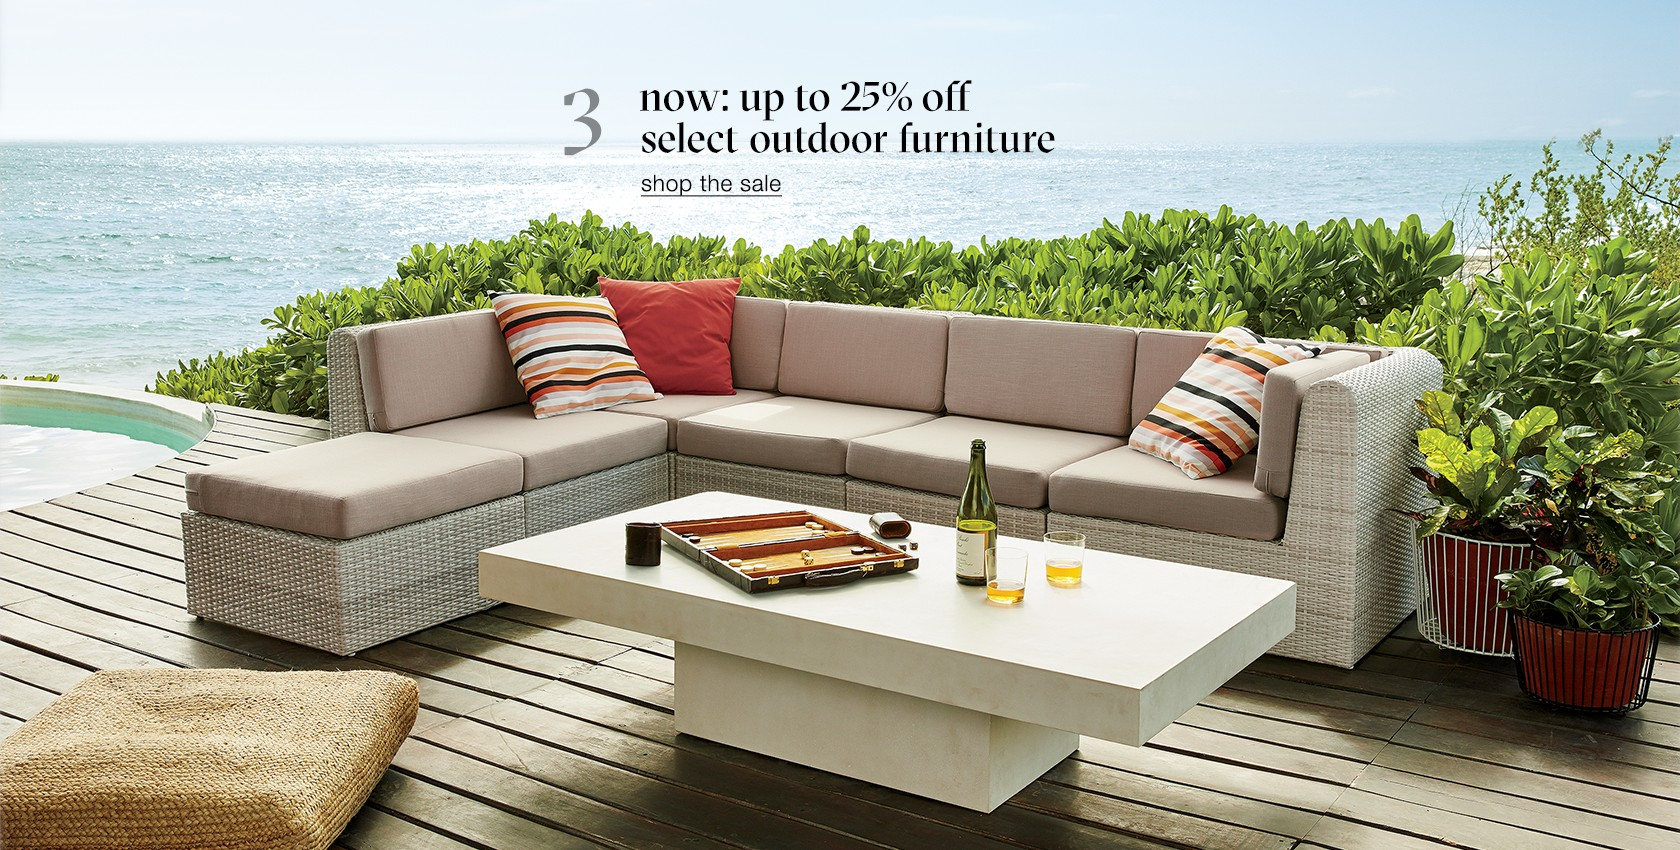 up to 25% off select outdoor furniture.